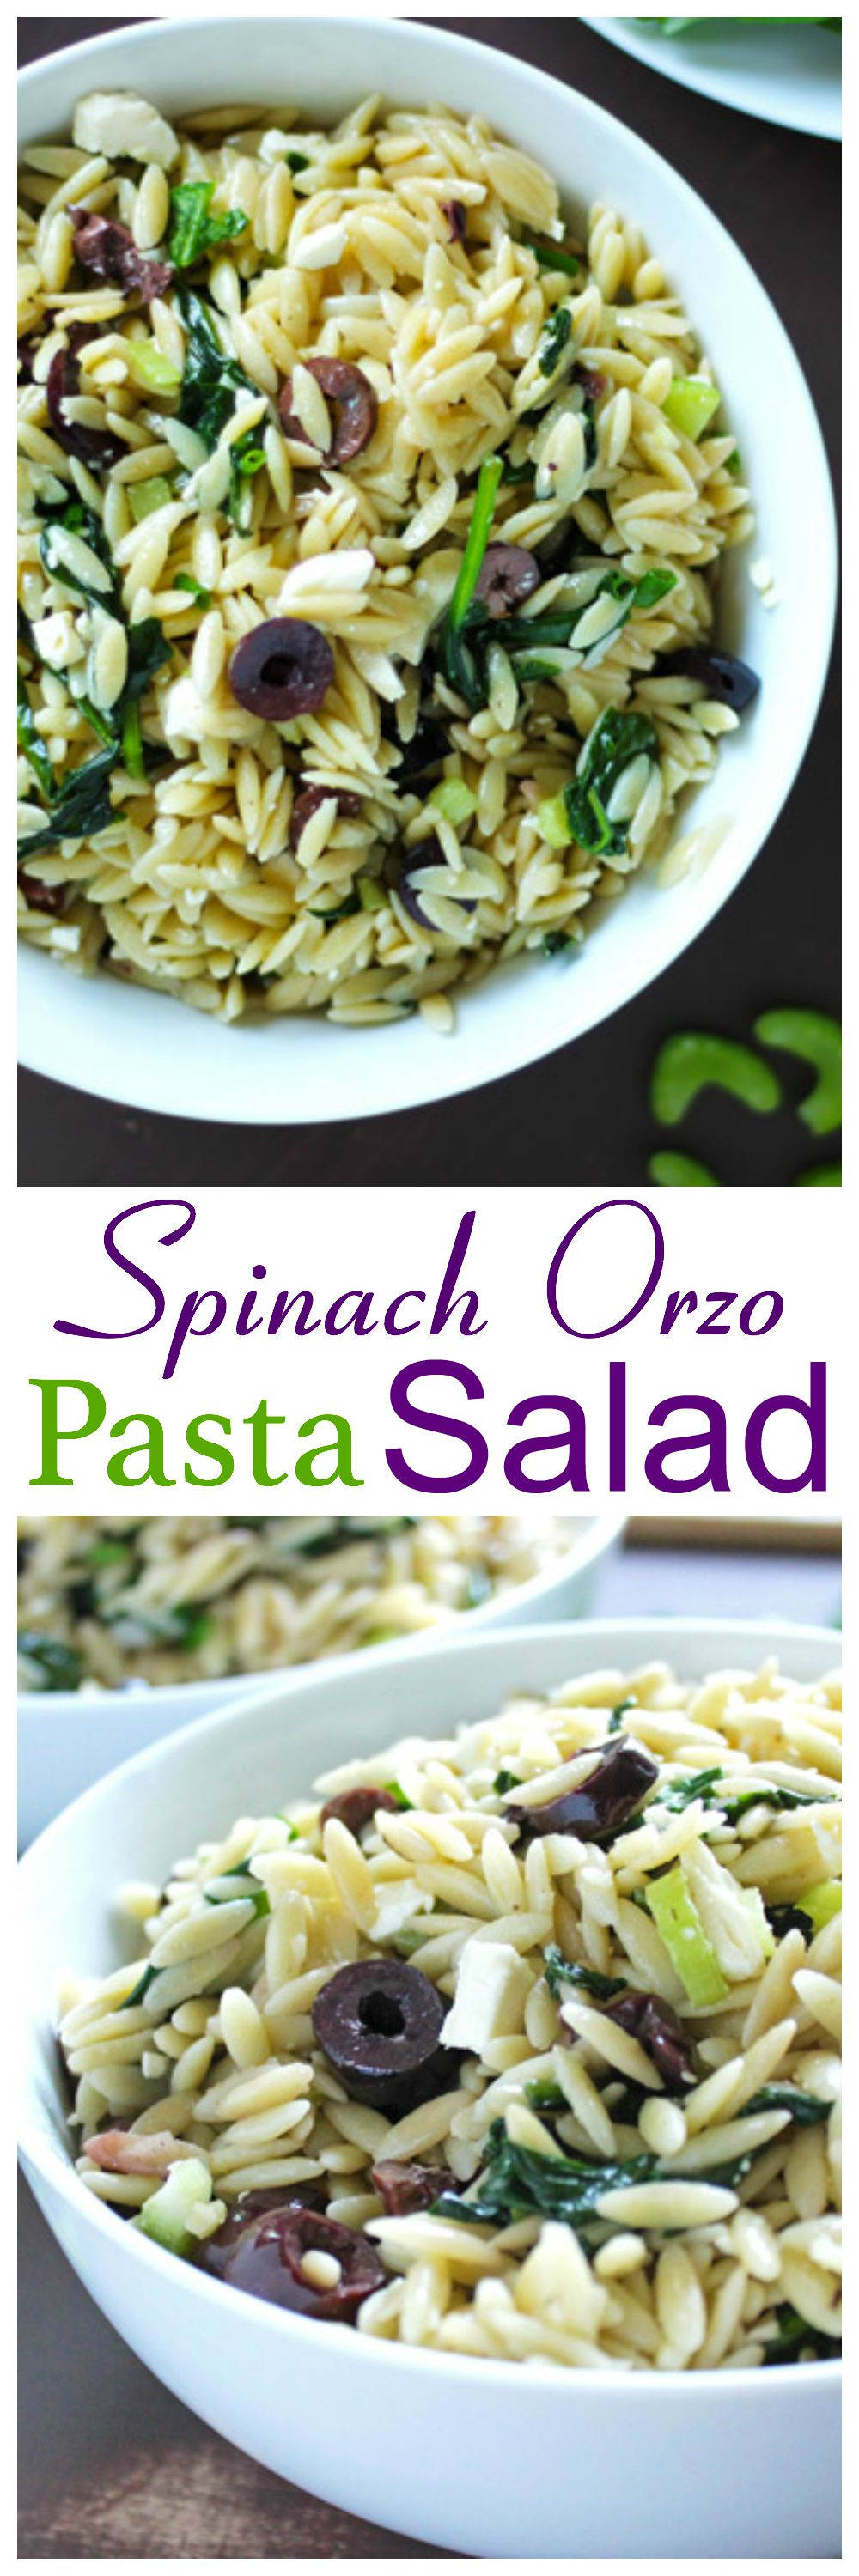 Spinach Orzo Pasta Salad An All Star Salad Easy To Make Easily Portable